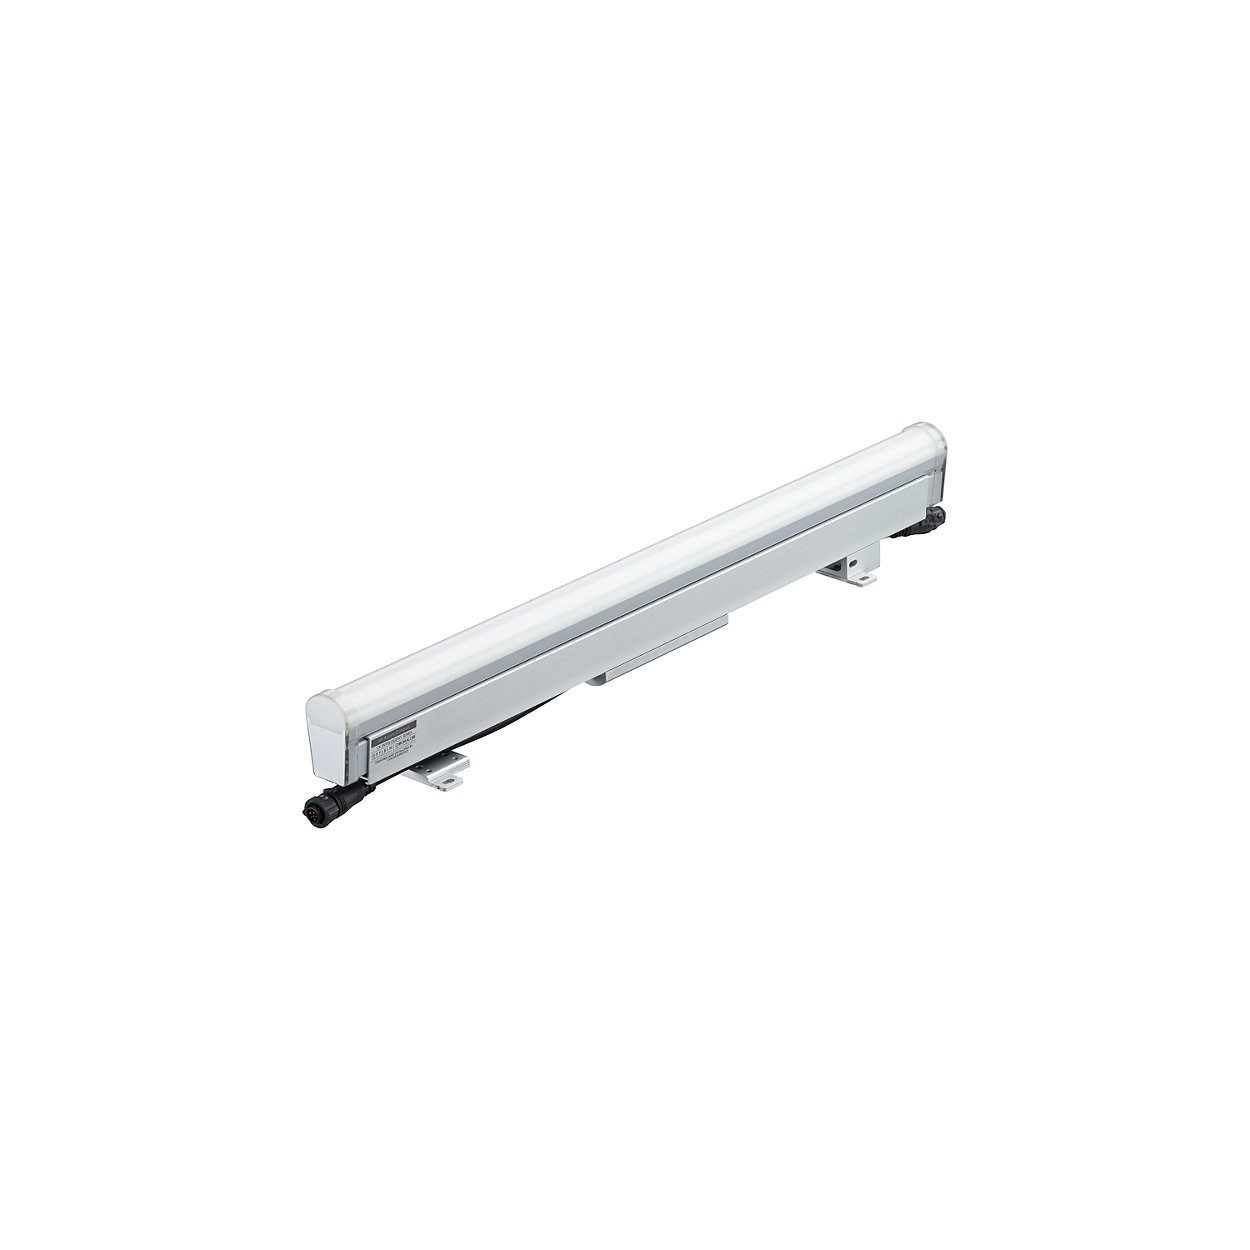 iW Accent Compact - High resolution media direct view linear LED luminaire with intelligent white light